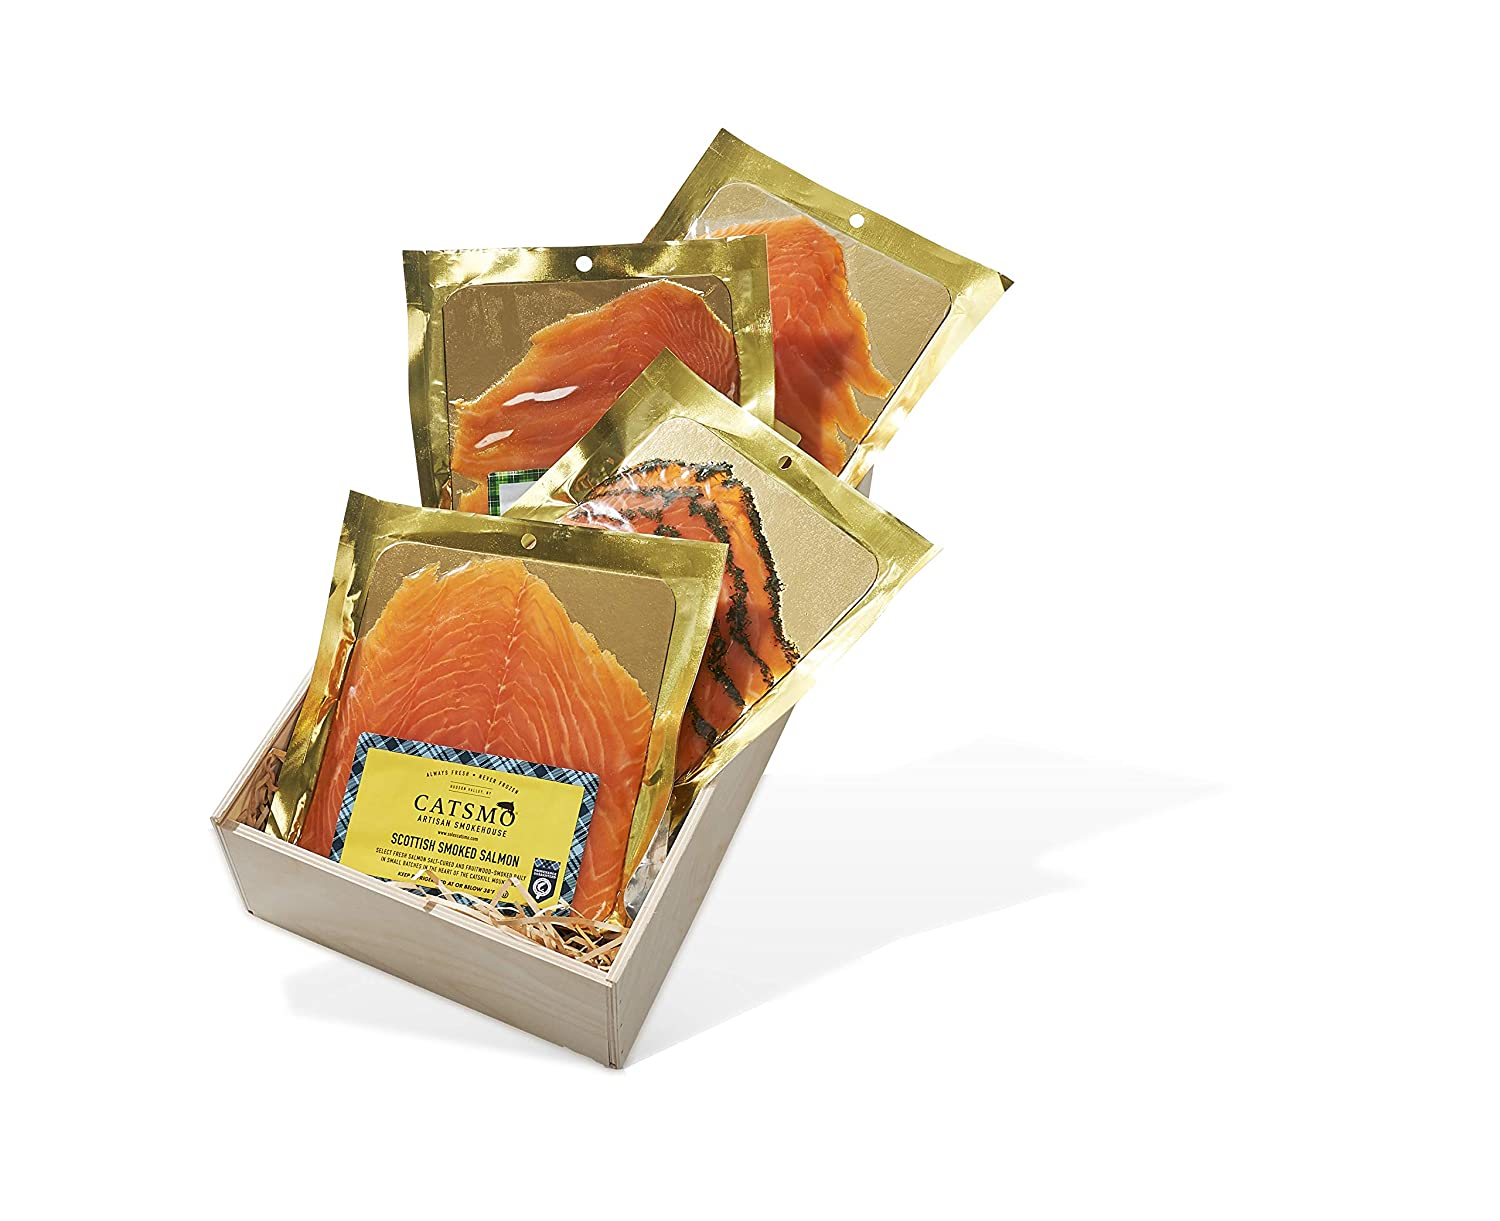 Catsmo Smoked Salmon Collection - 4 x 4oz Packs